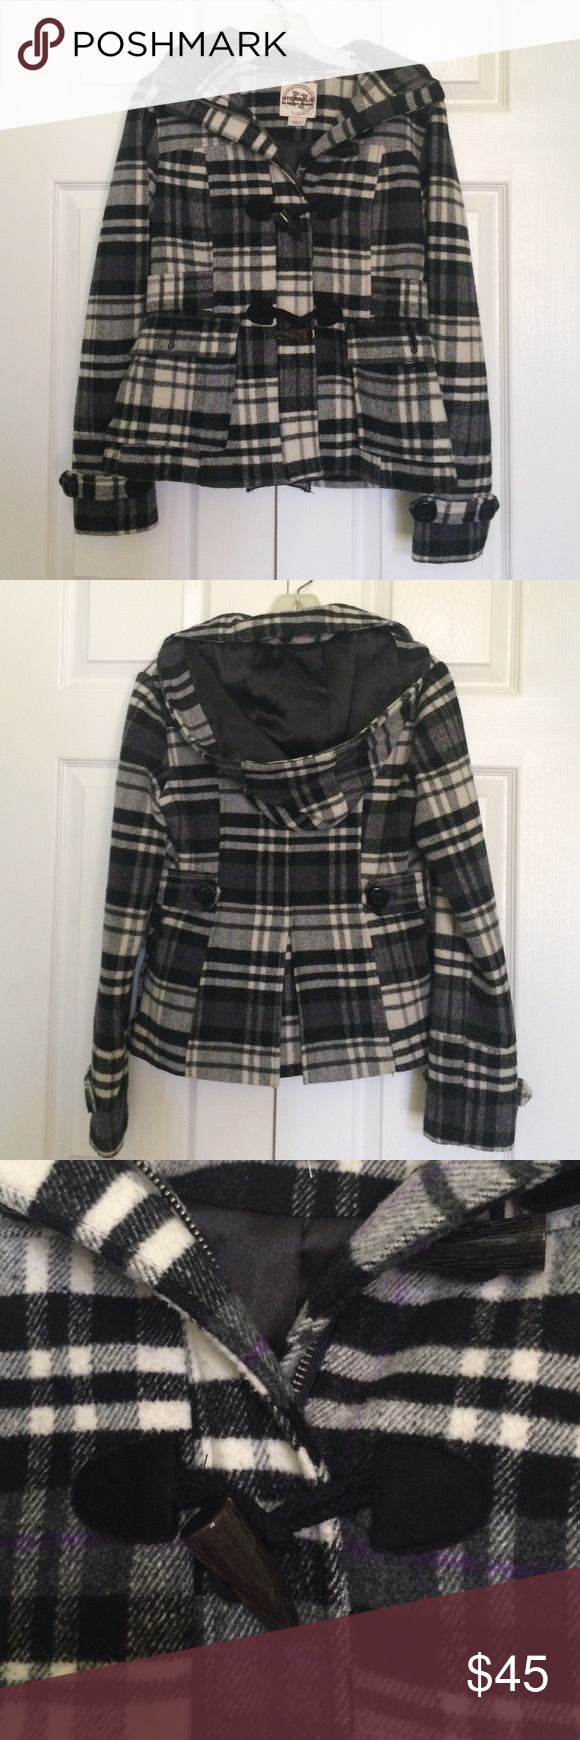 Black and white plaid coat Black and white plaid shirt coat with zipper and removable hood and two types of pockets. Excellent condition. Hydraulic Jackets & Coats